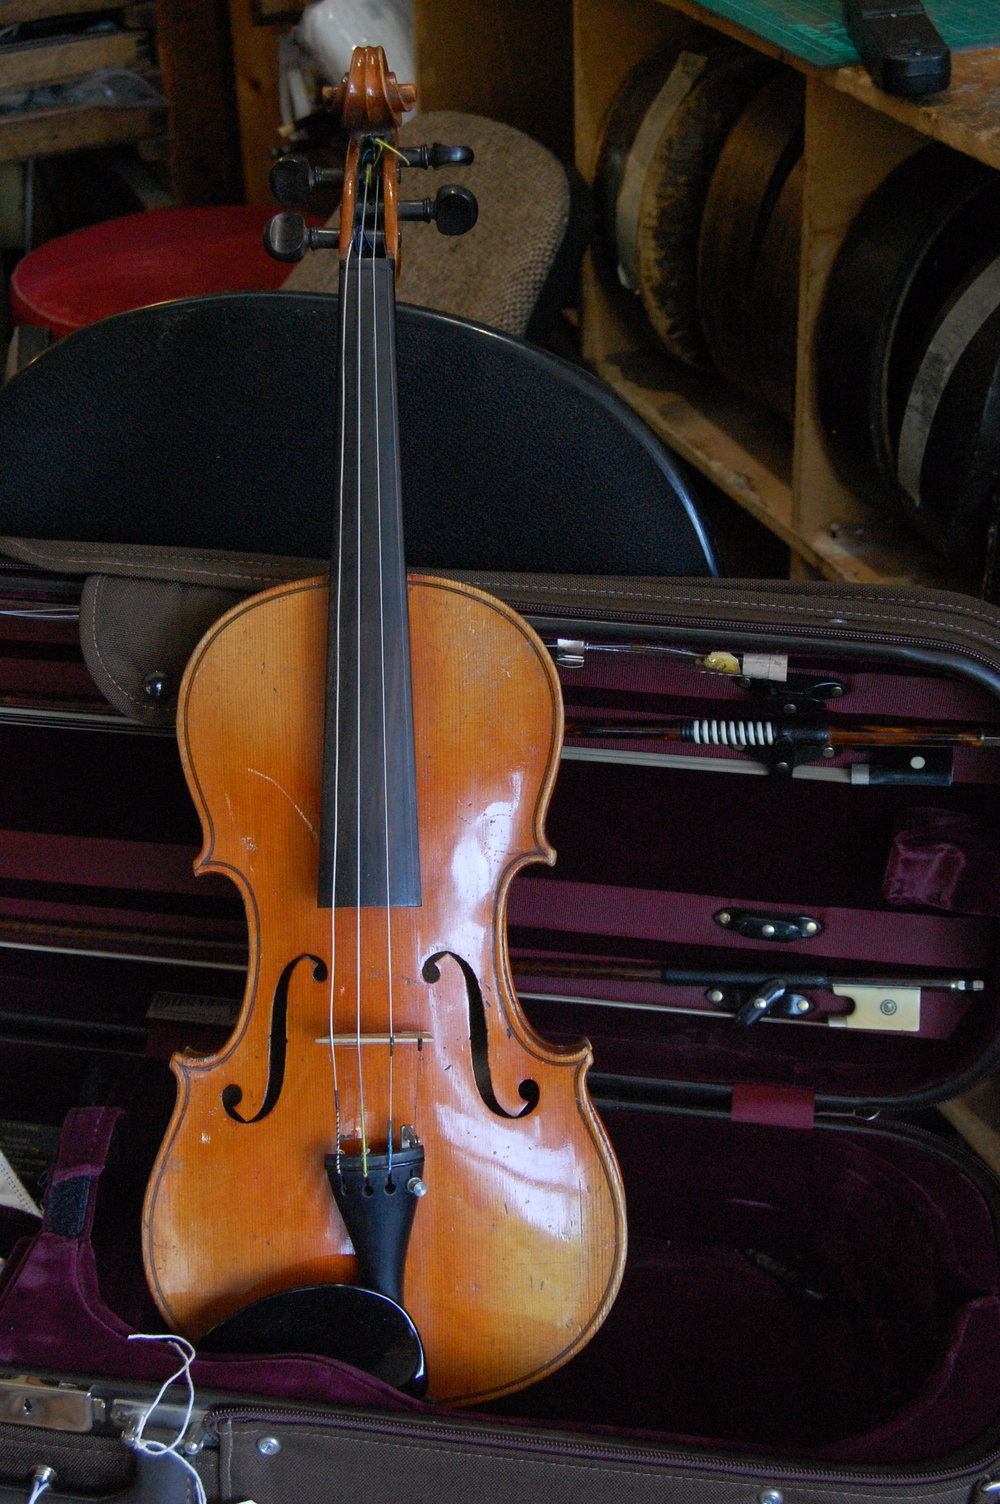 Full size German violin C1920 with case and 2 bows. £800 CS007  Condition: Good  Tone:4/5  Value for money: 4/5  Overall rating: 4/5